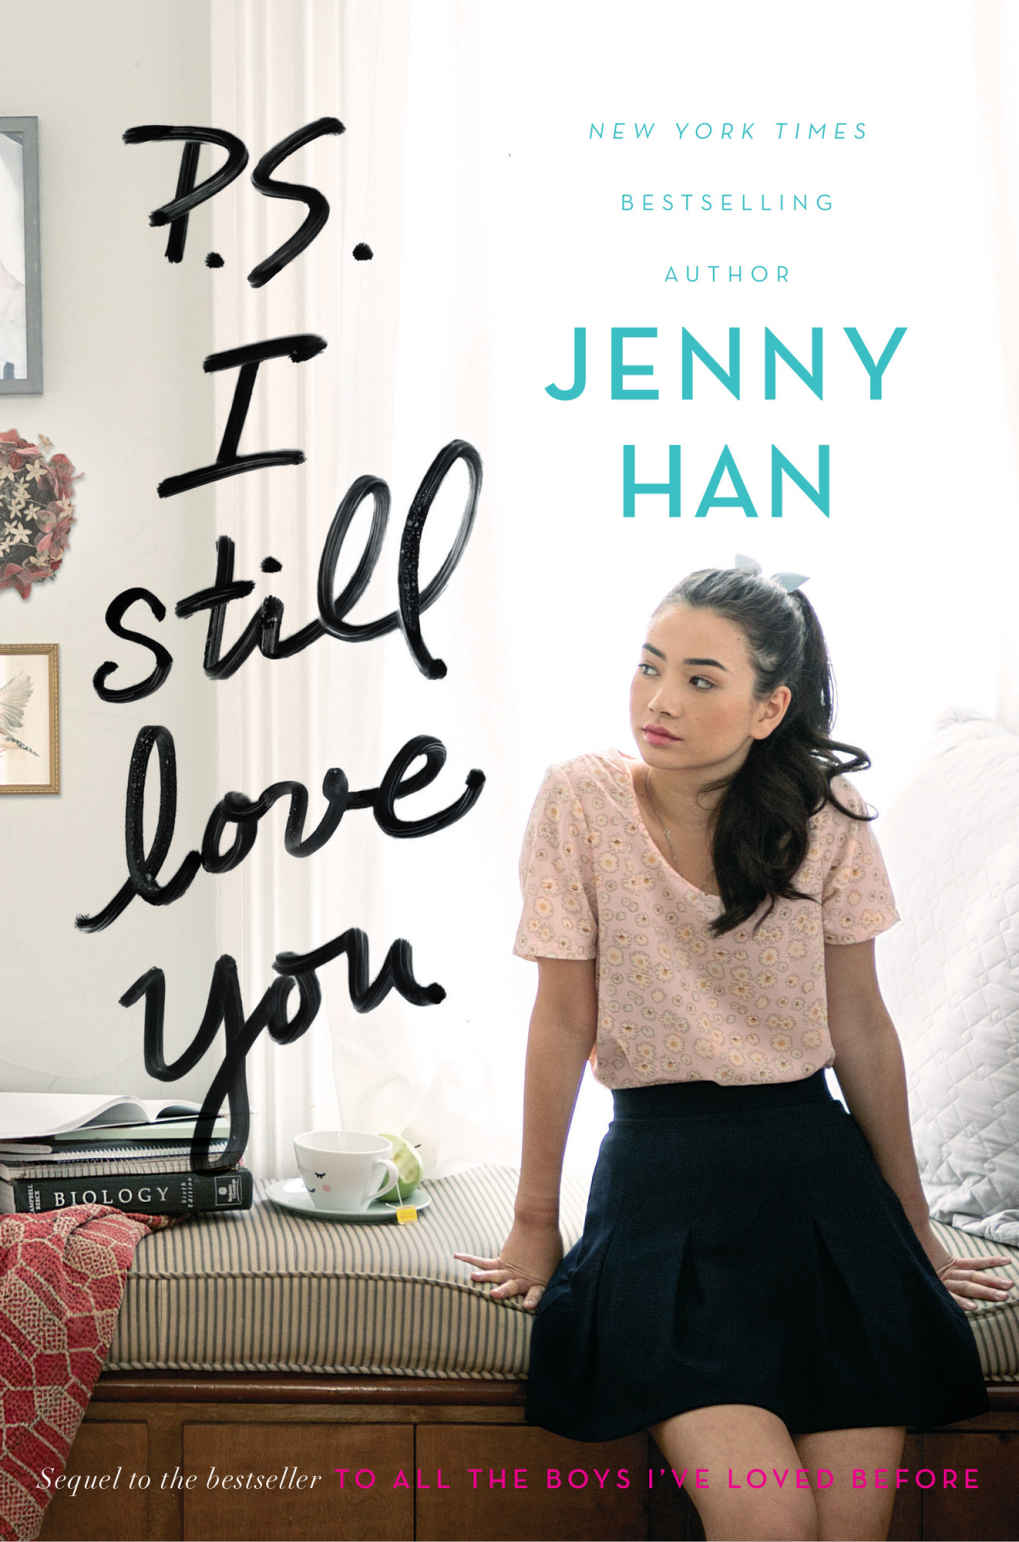 P.S. I Still Love You - Jenny Han [kindle] [mobi]